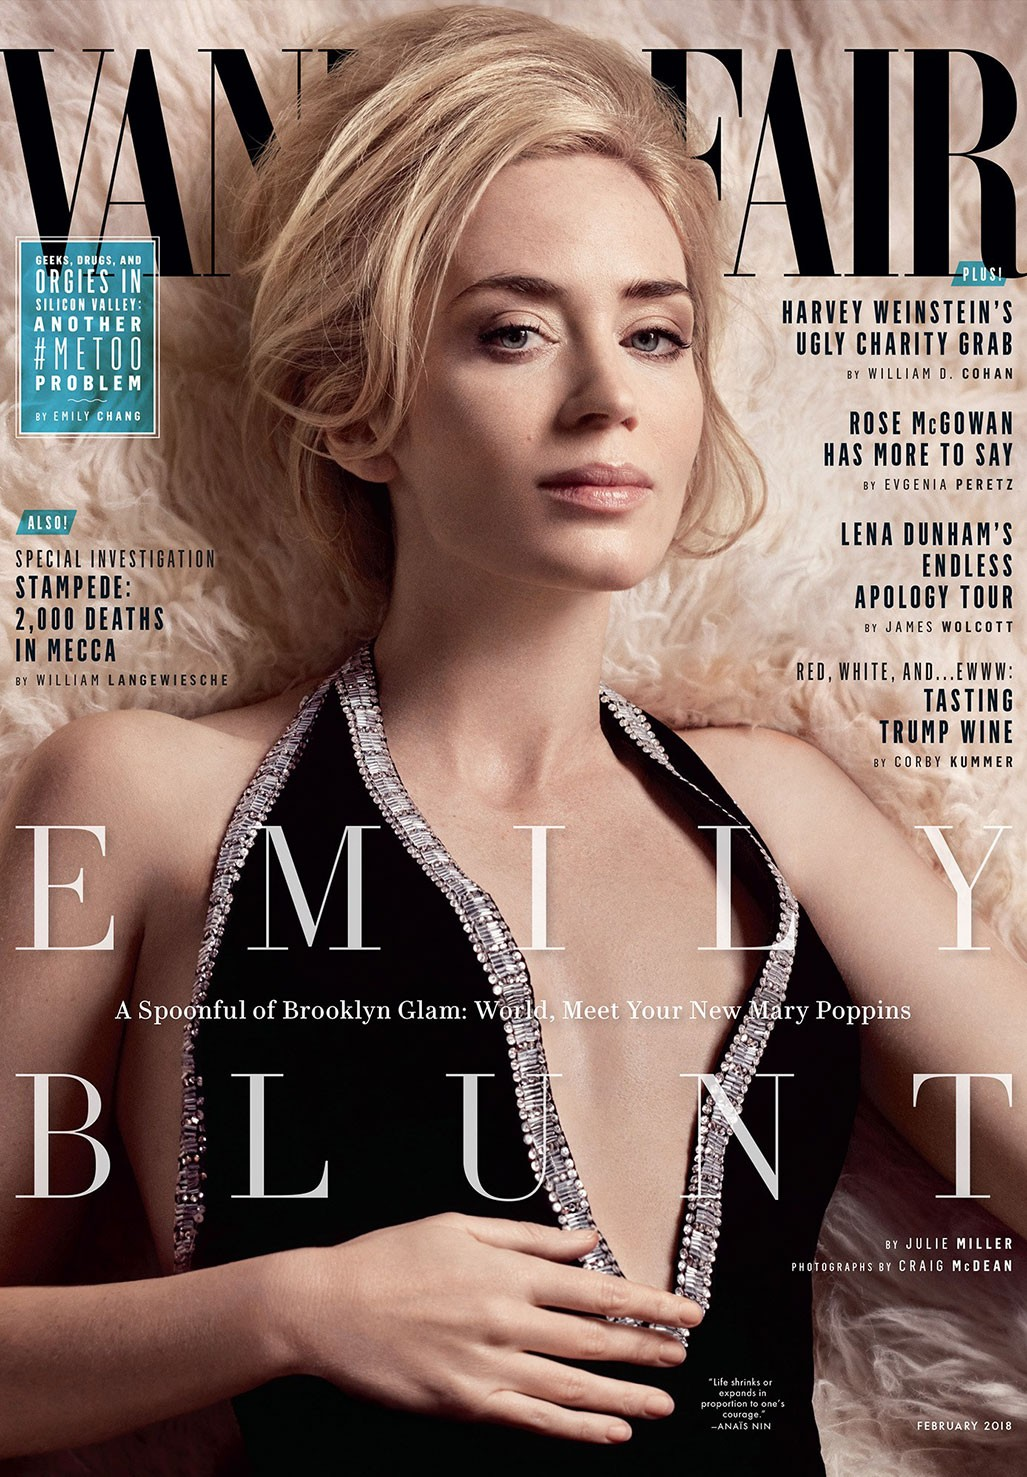 Мэри Поппинс возвращается - Эмили Блант / Emily Blunt by Craig McDean - Vanity Fair february 2018